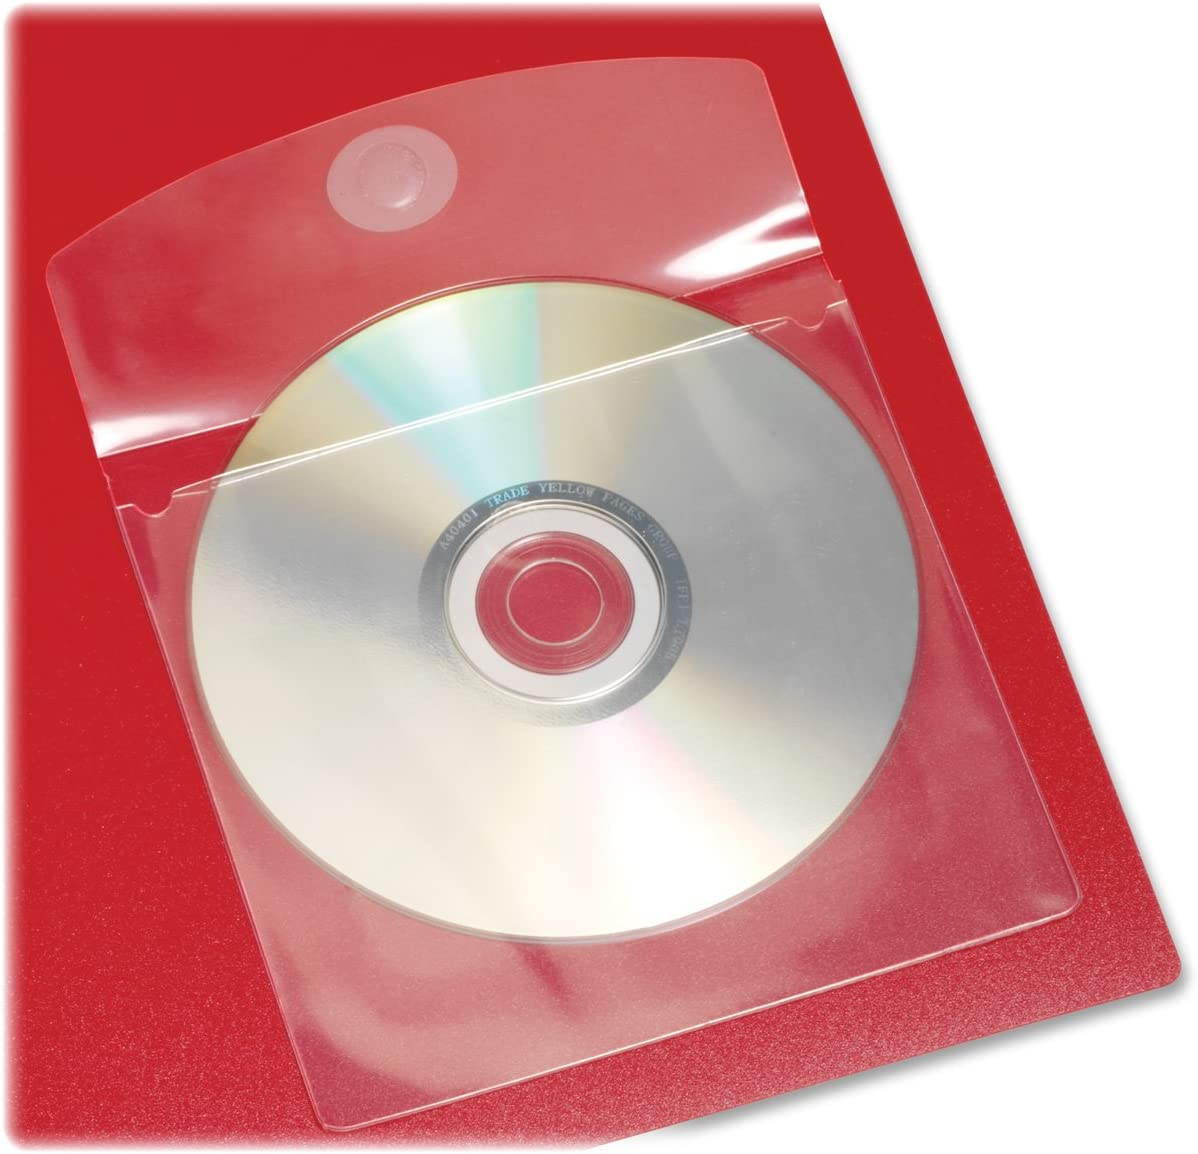 Cardinal HOLDit! Self-Adhesive CD or DVD Pockets, 5 x 5 Inches, Clear, 10 Pockets per Bag (21845)